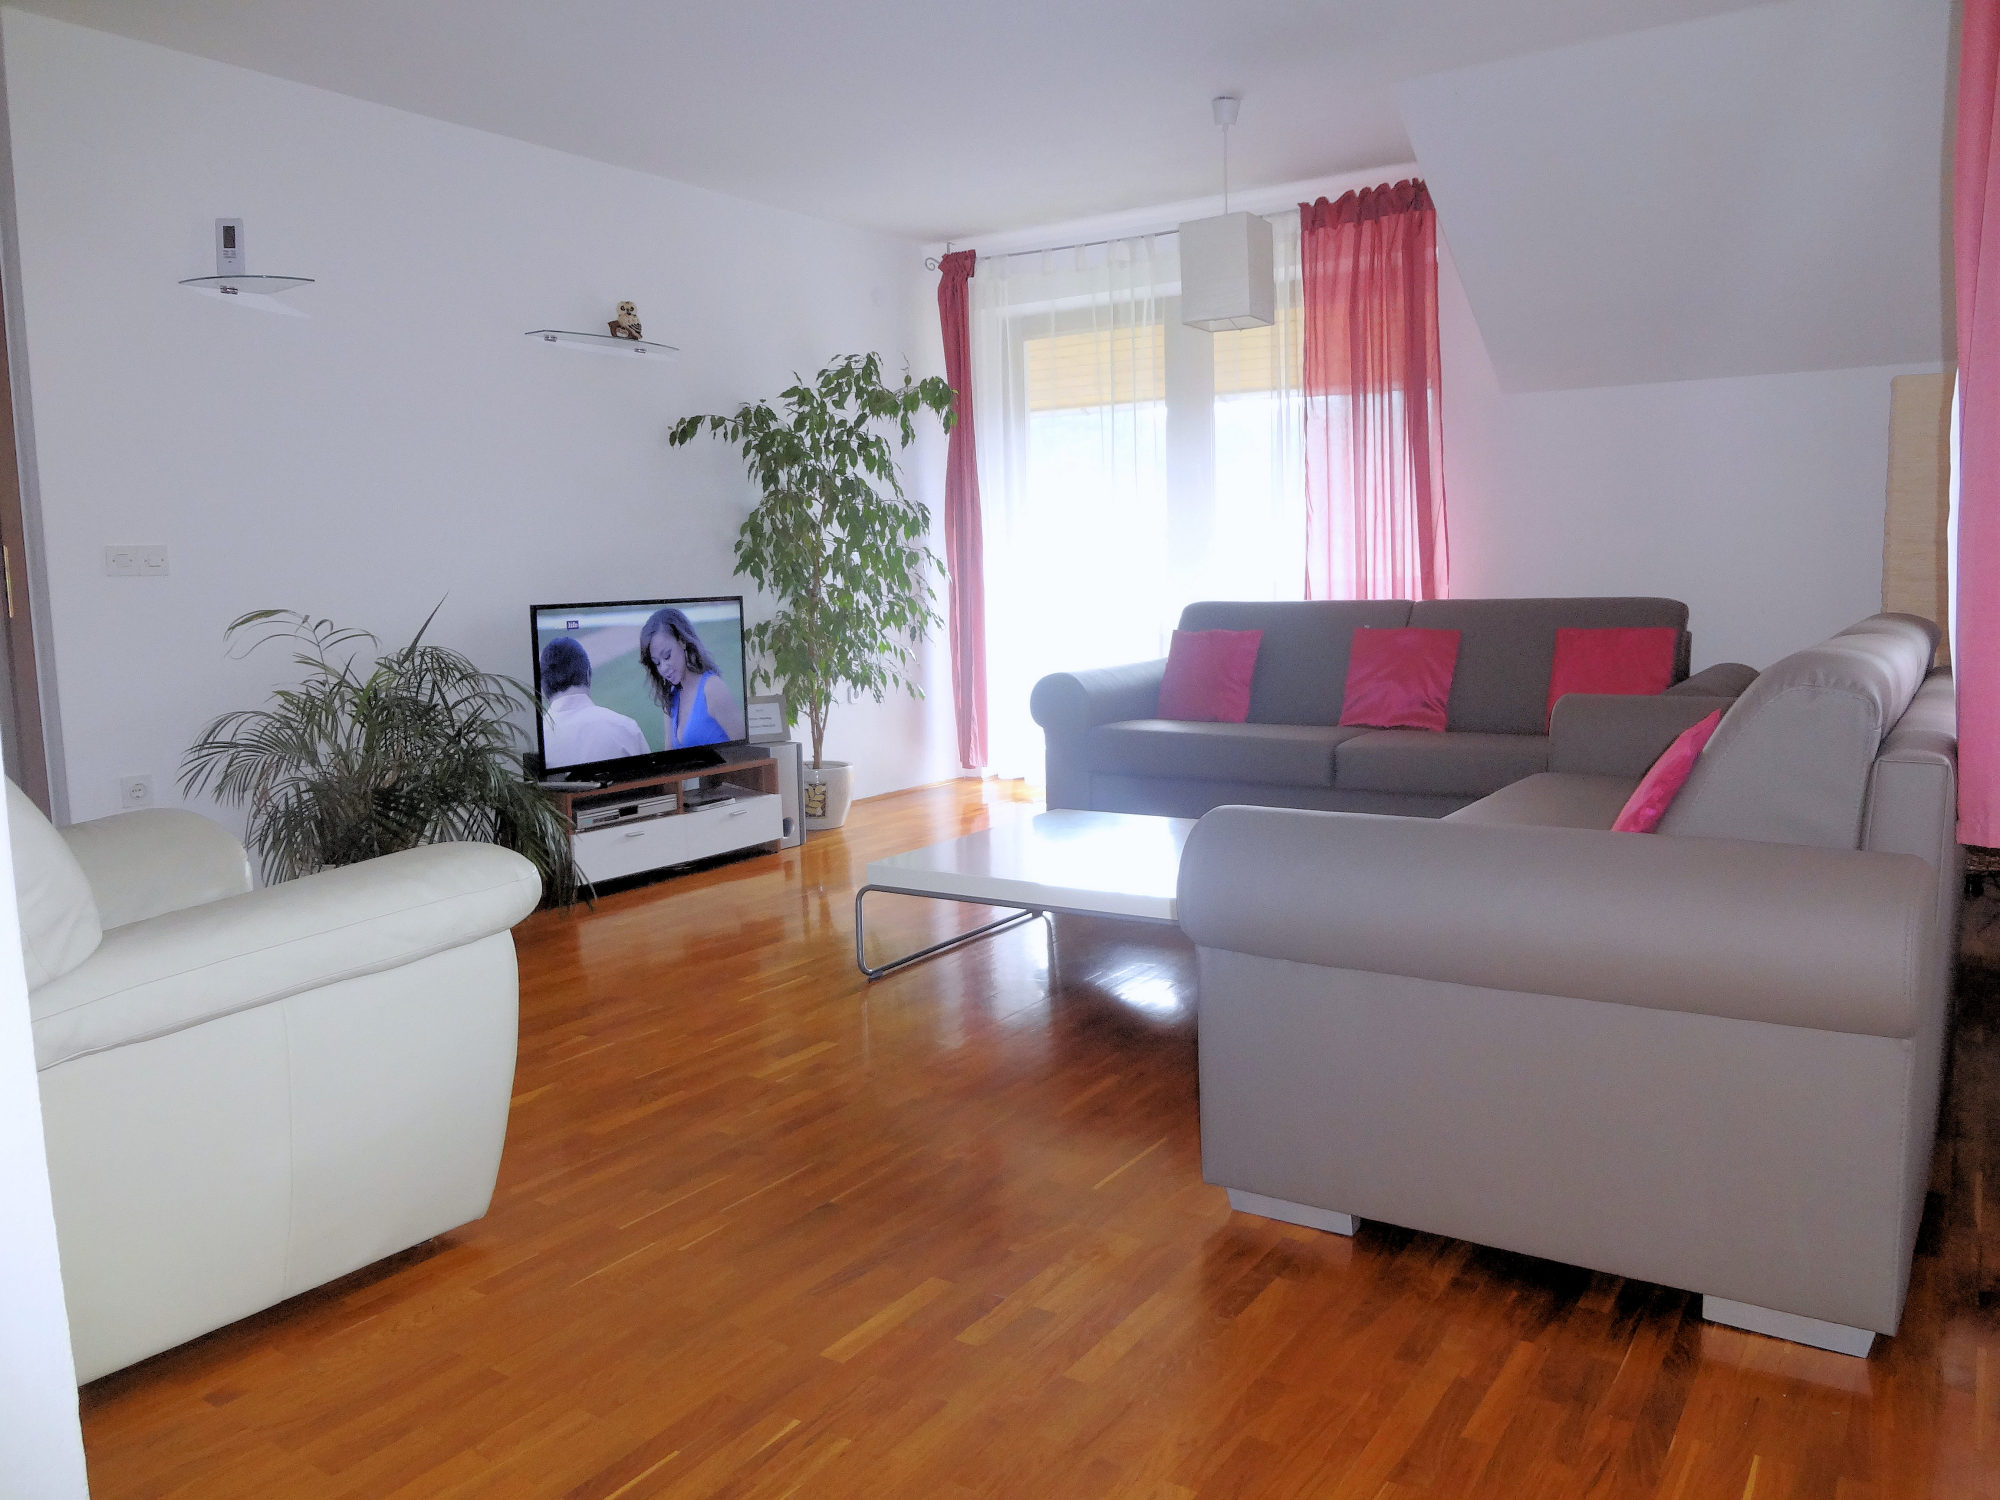 Living room with a large TV, Apartments Fine Stay in the Bled area of Slovenia